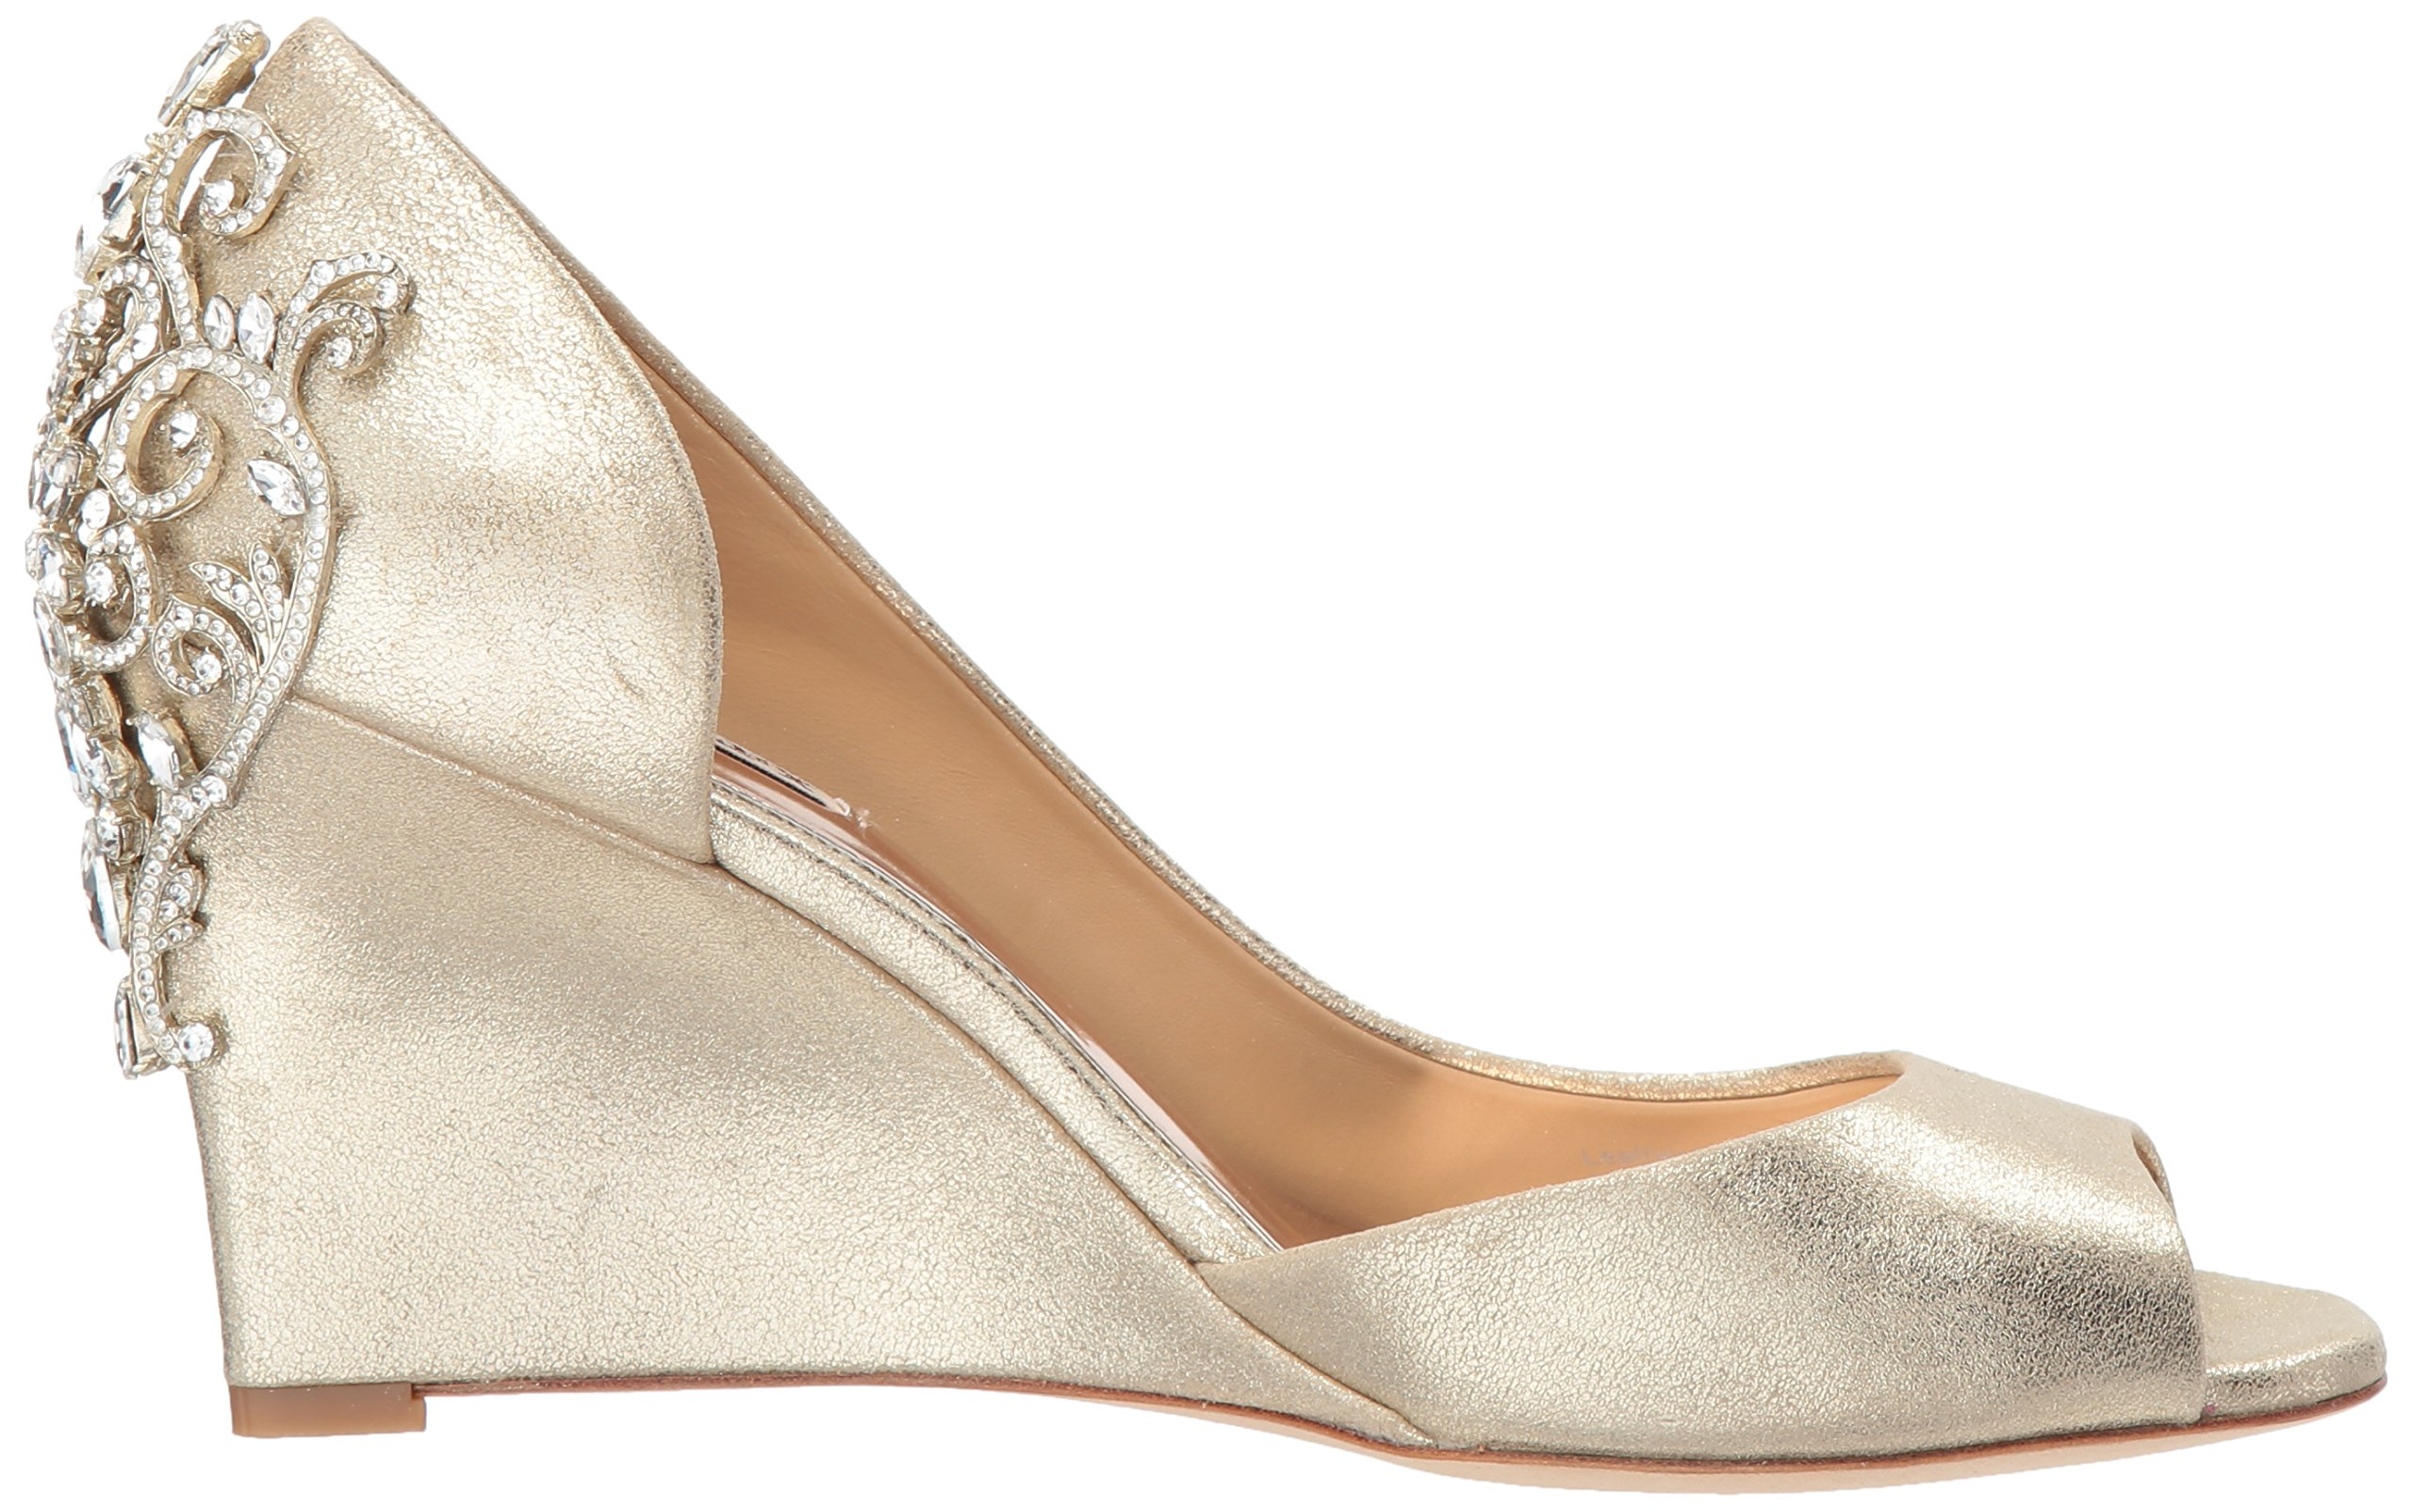 Badgley Mischka Women's Meagan II Pump, platino_929, 7 M US by Badgley Mischka (Image #7)